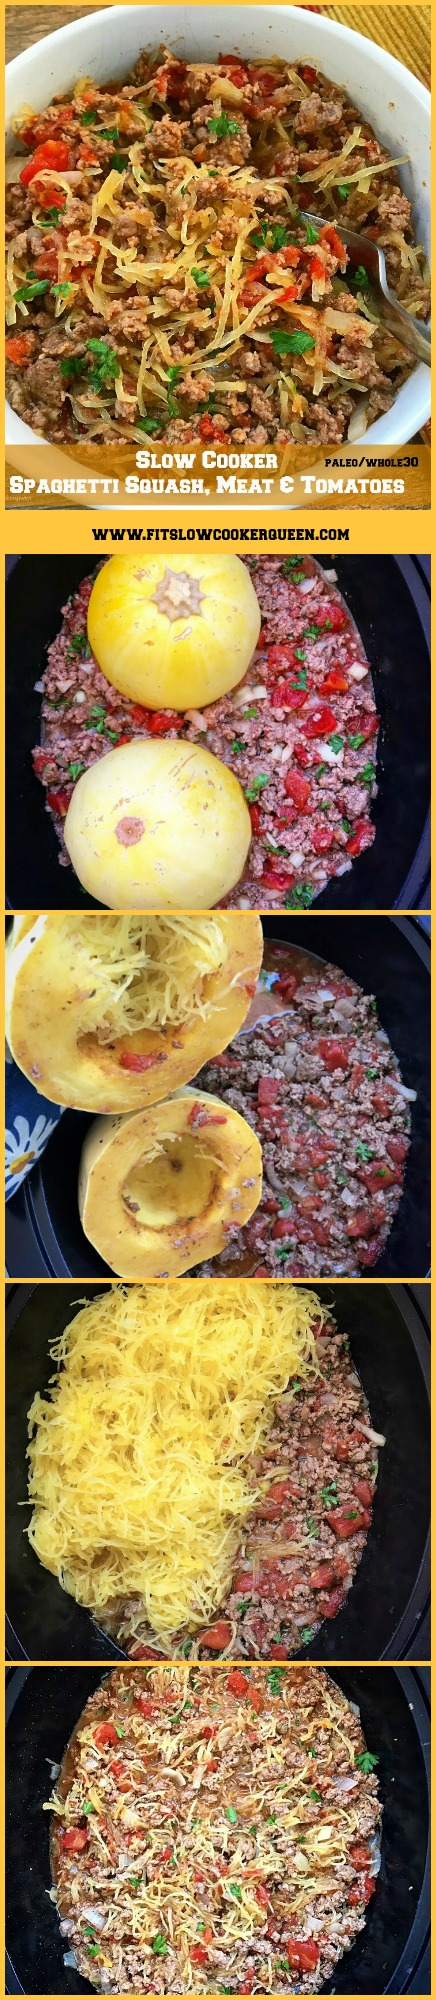 Spaghetti squash cooks in the slow cooker with your preferred ground meat, diced tomatoes, and seasonings for this simple yet healthy recipe.